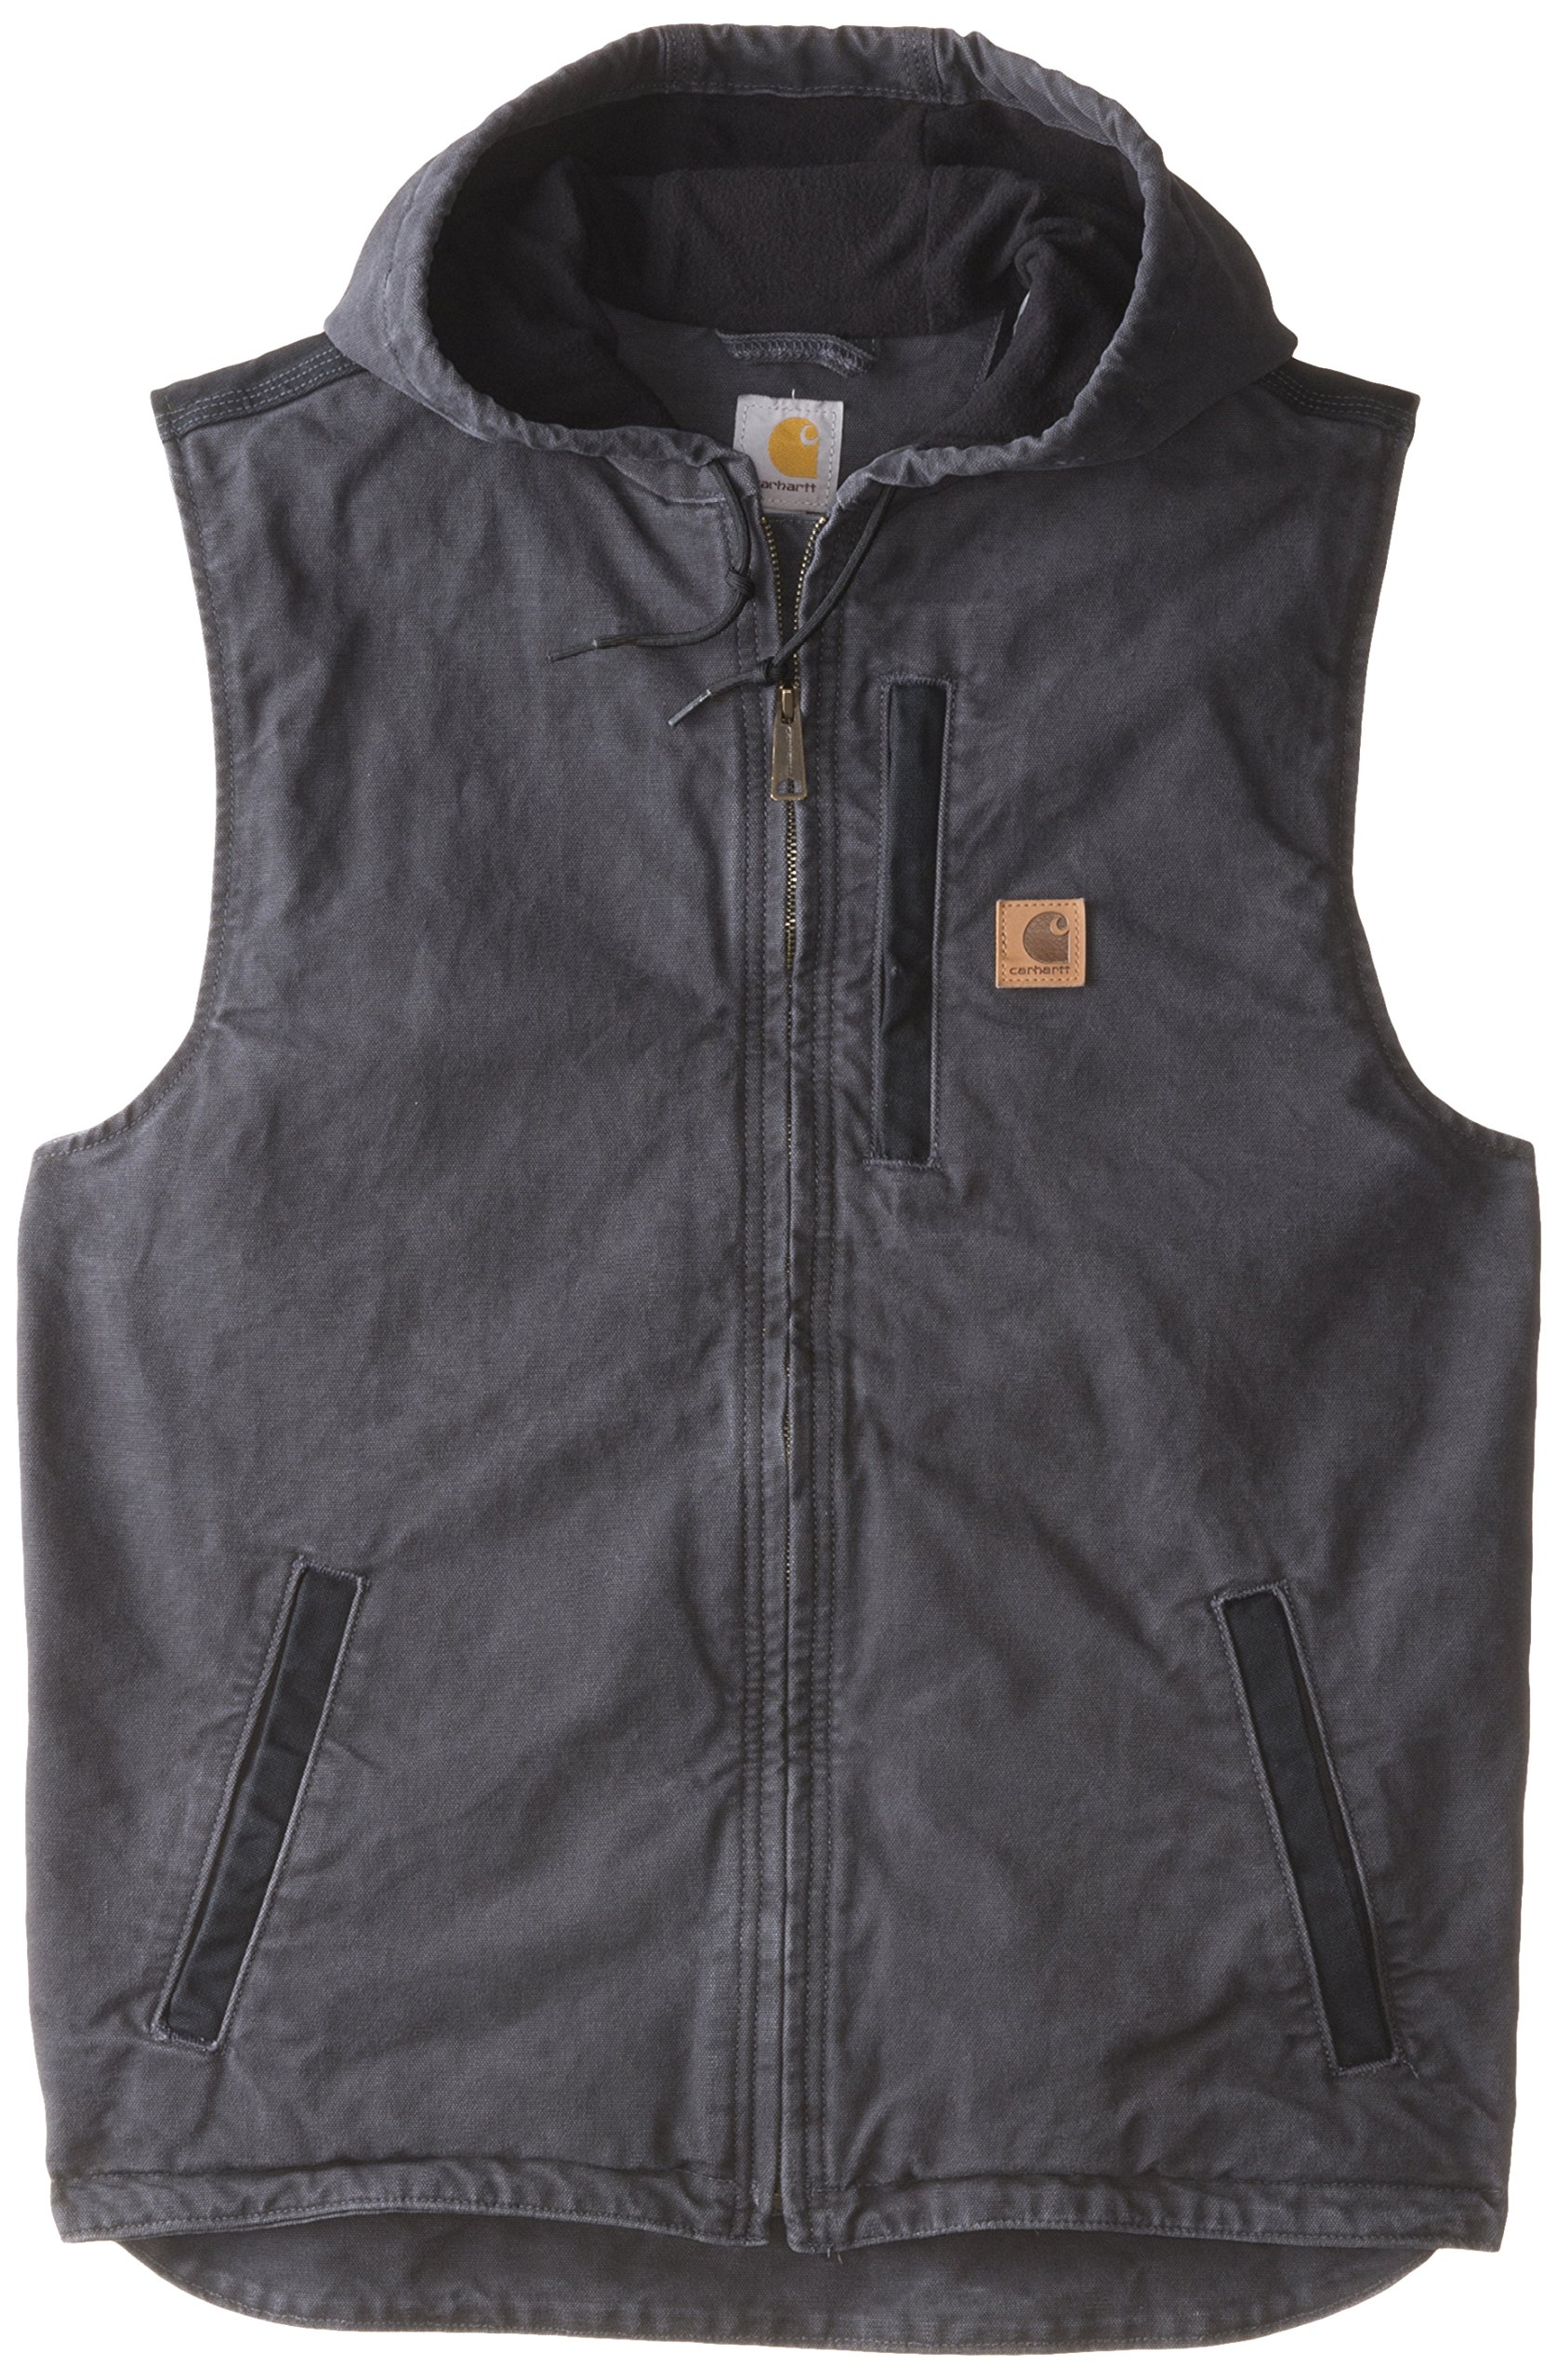 Carhartt Men's Big & Tall Knoxville Vest,Shadow,X-Large Tall by Carhartt